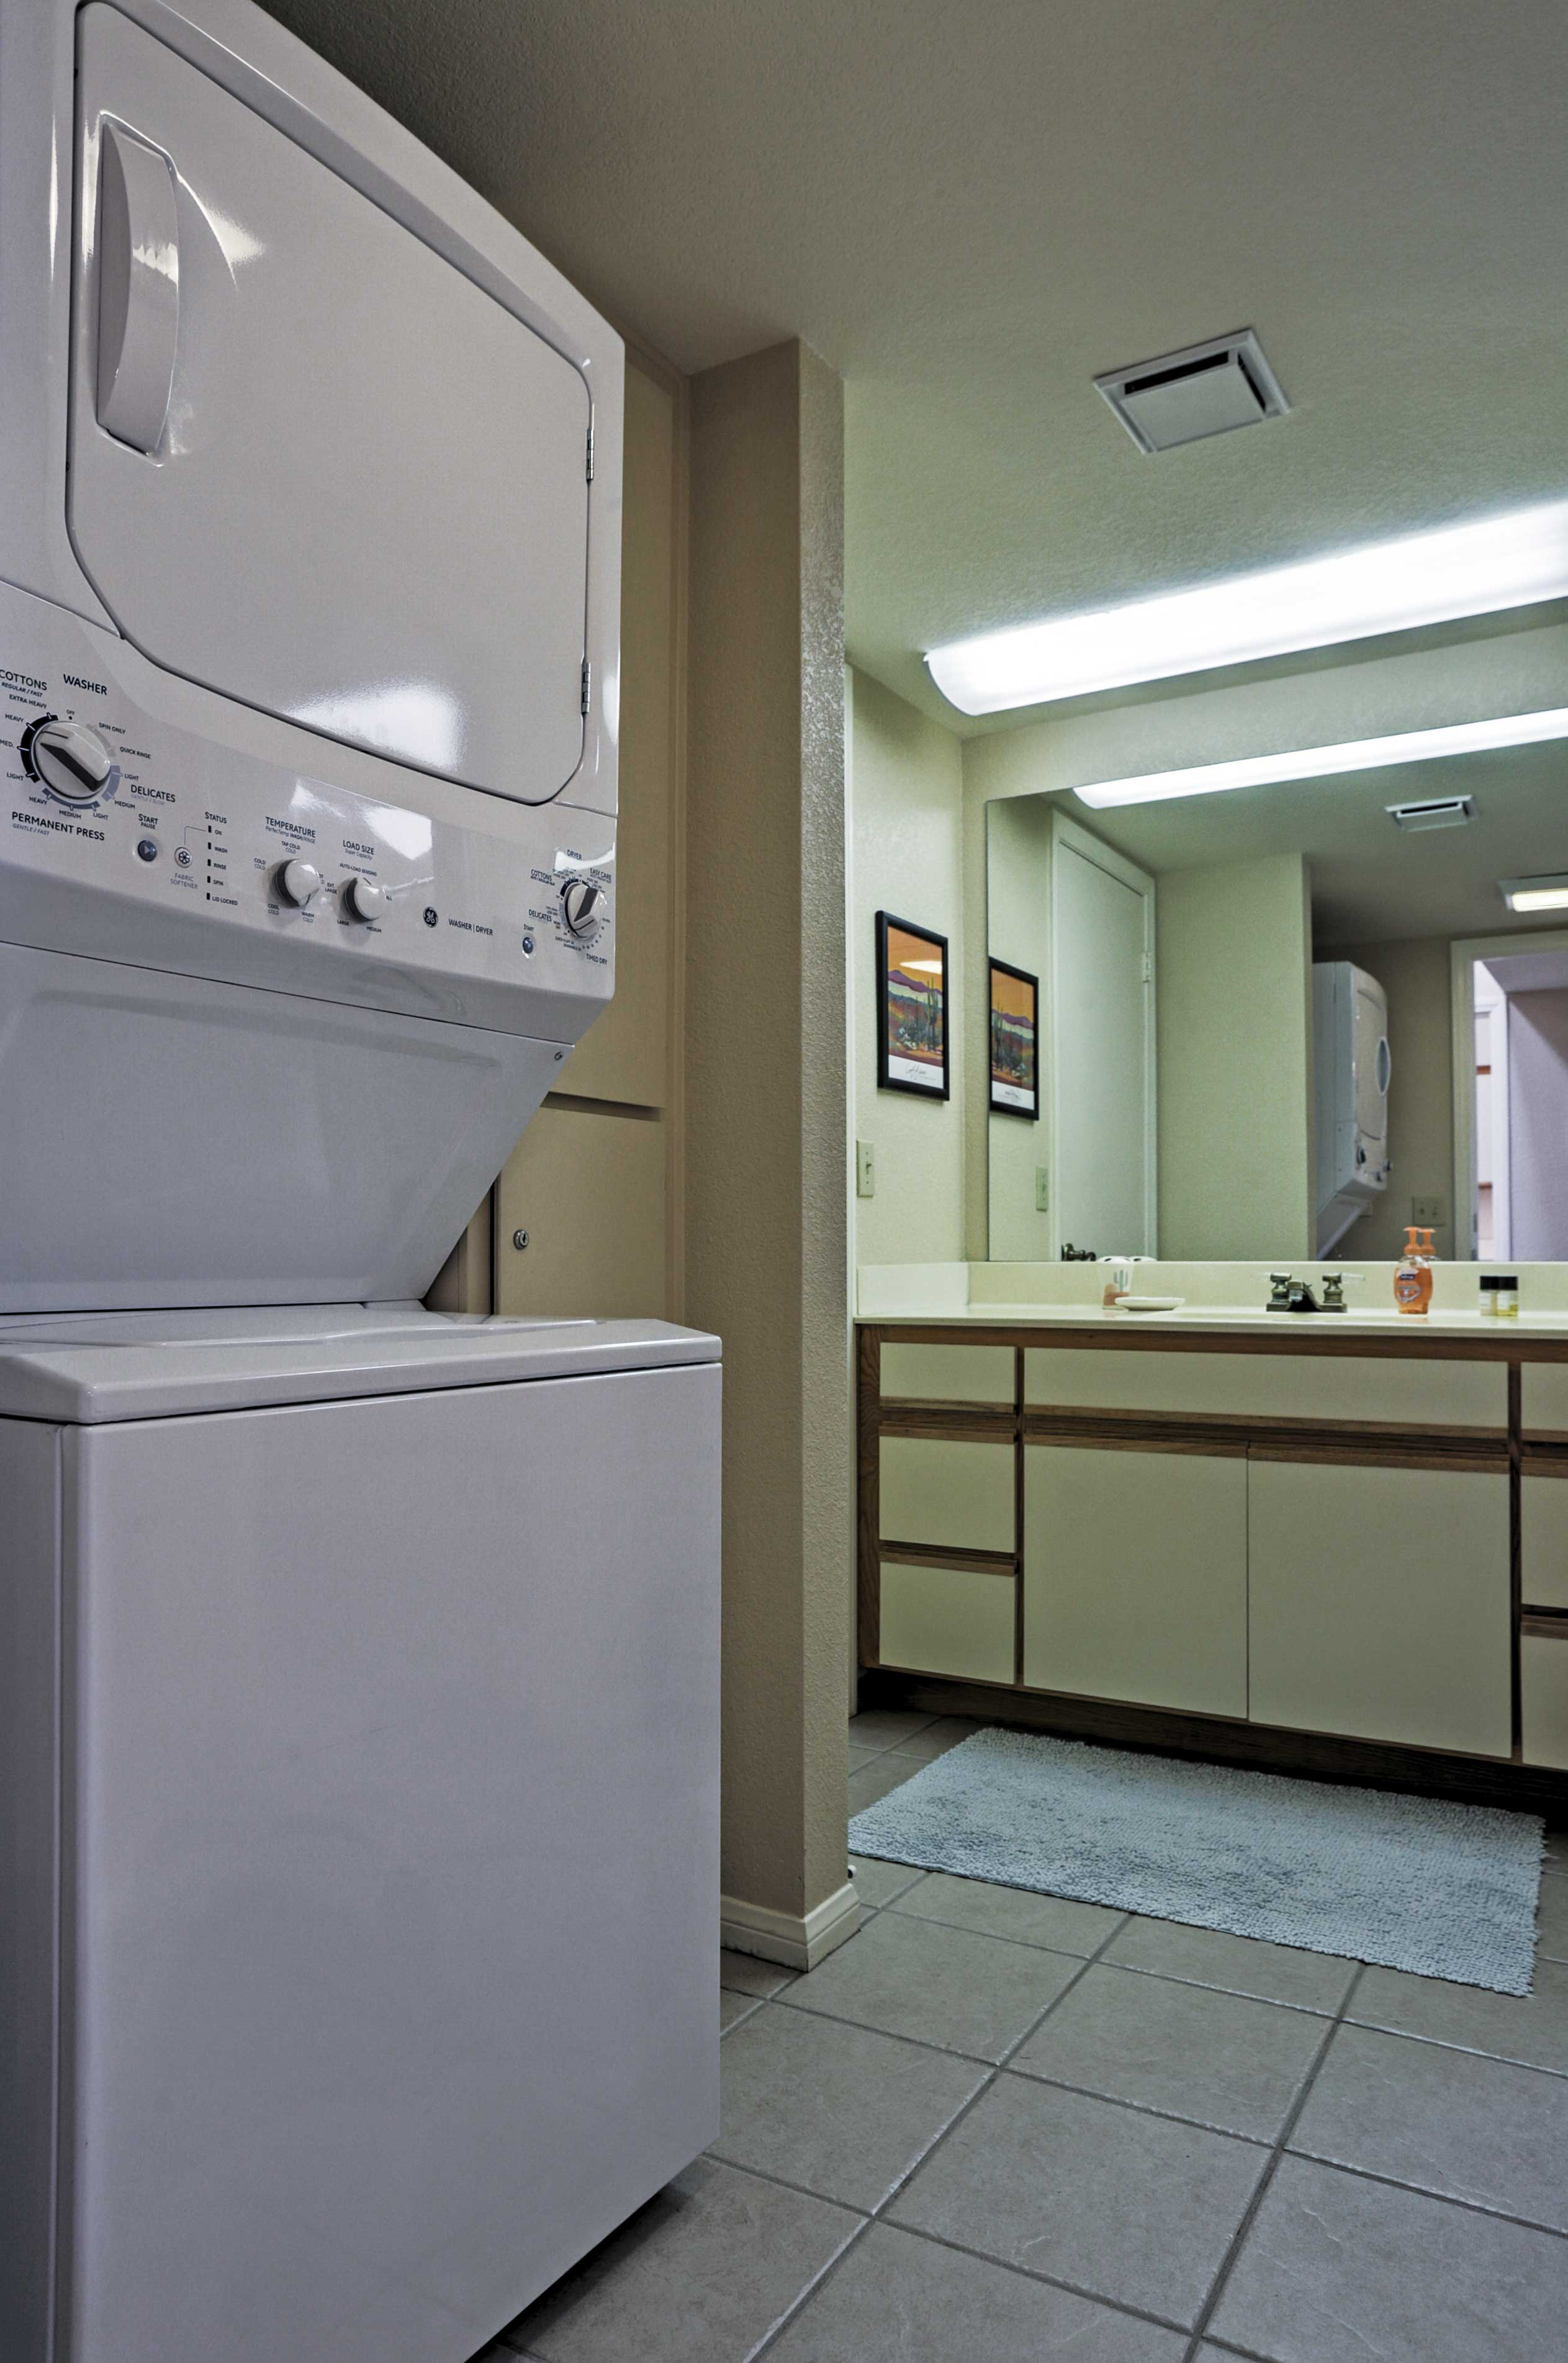 In-unit laundry machines ensure your clothes stay fresh and clean.